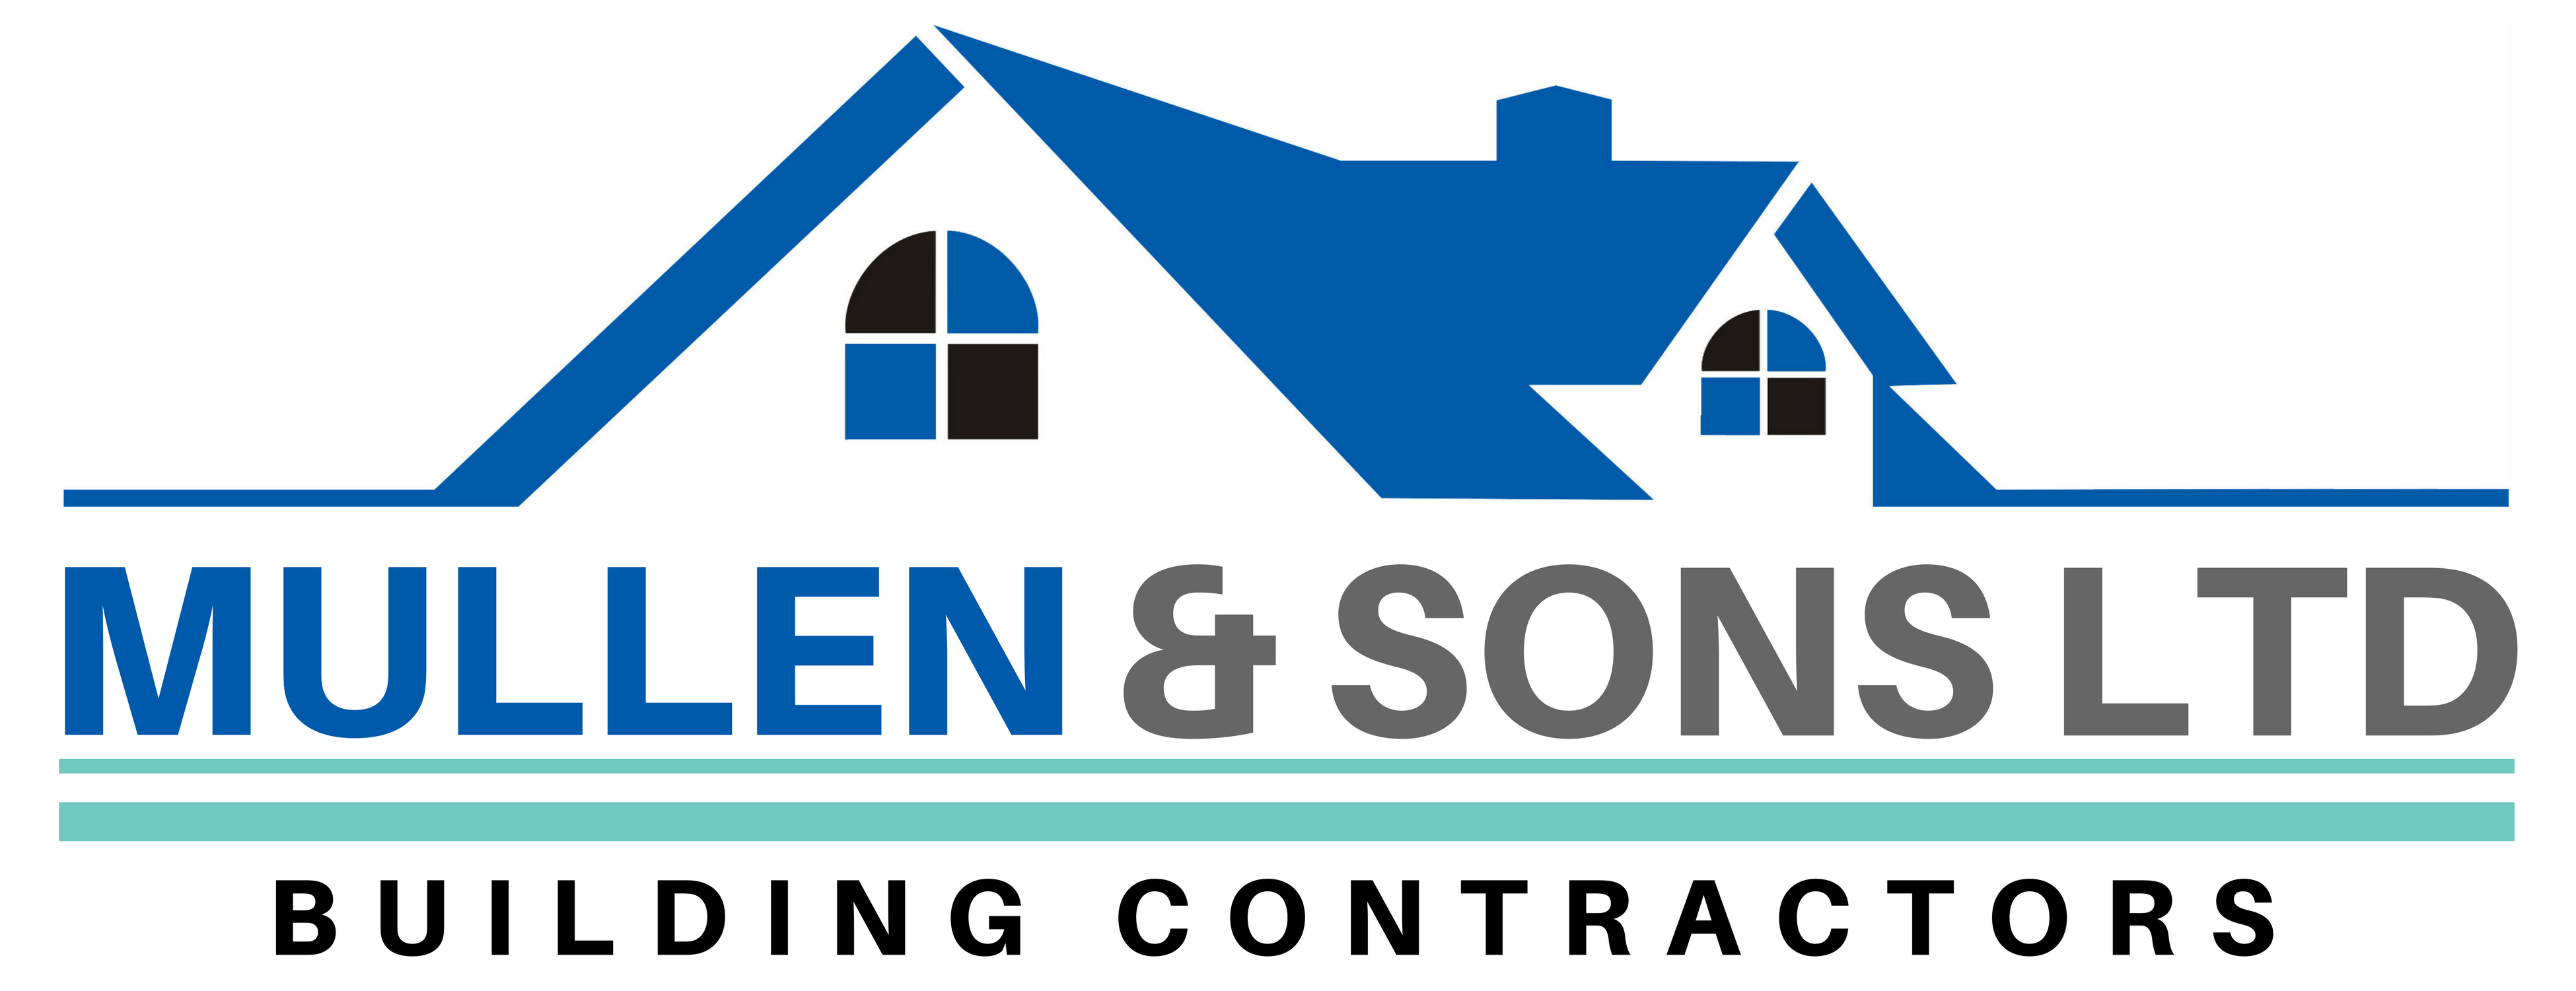 Mullen and sons ltd building contractors for Household design limited